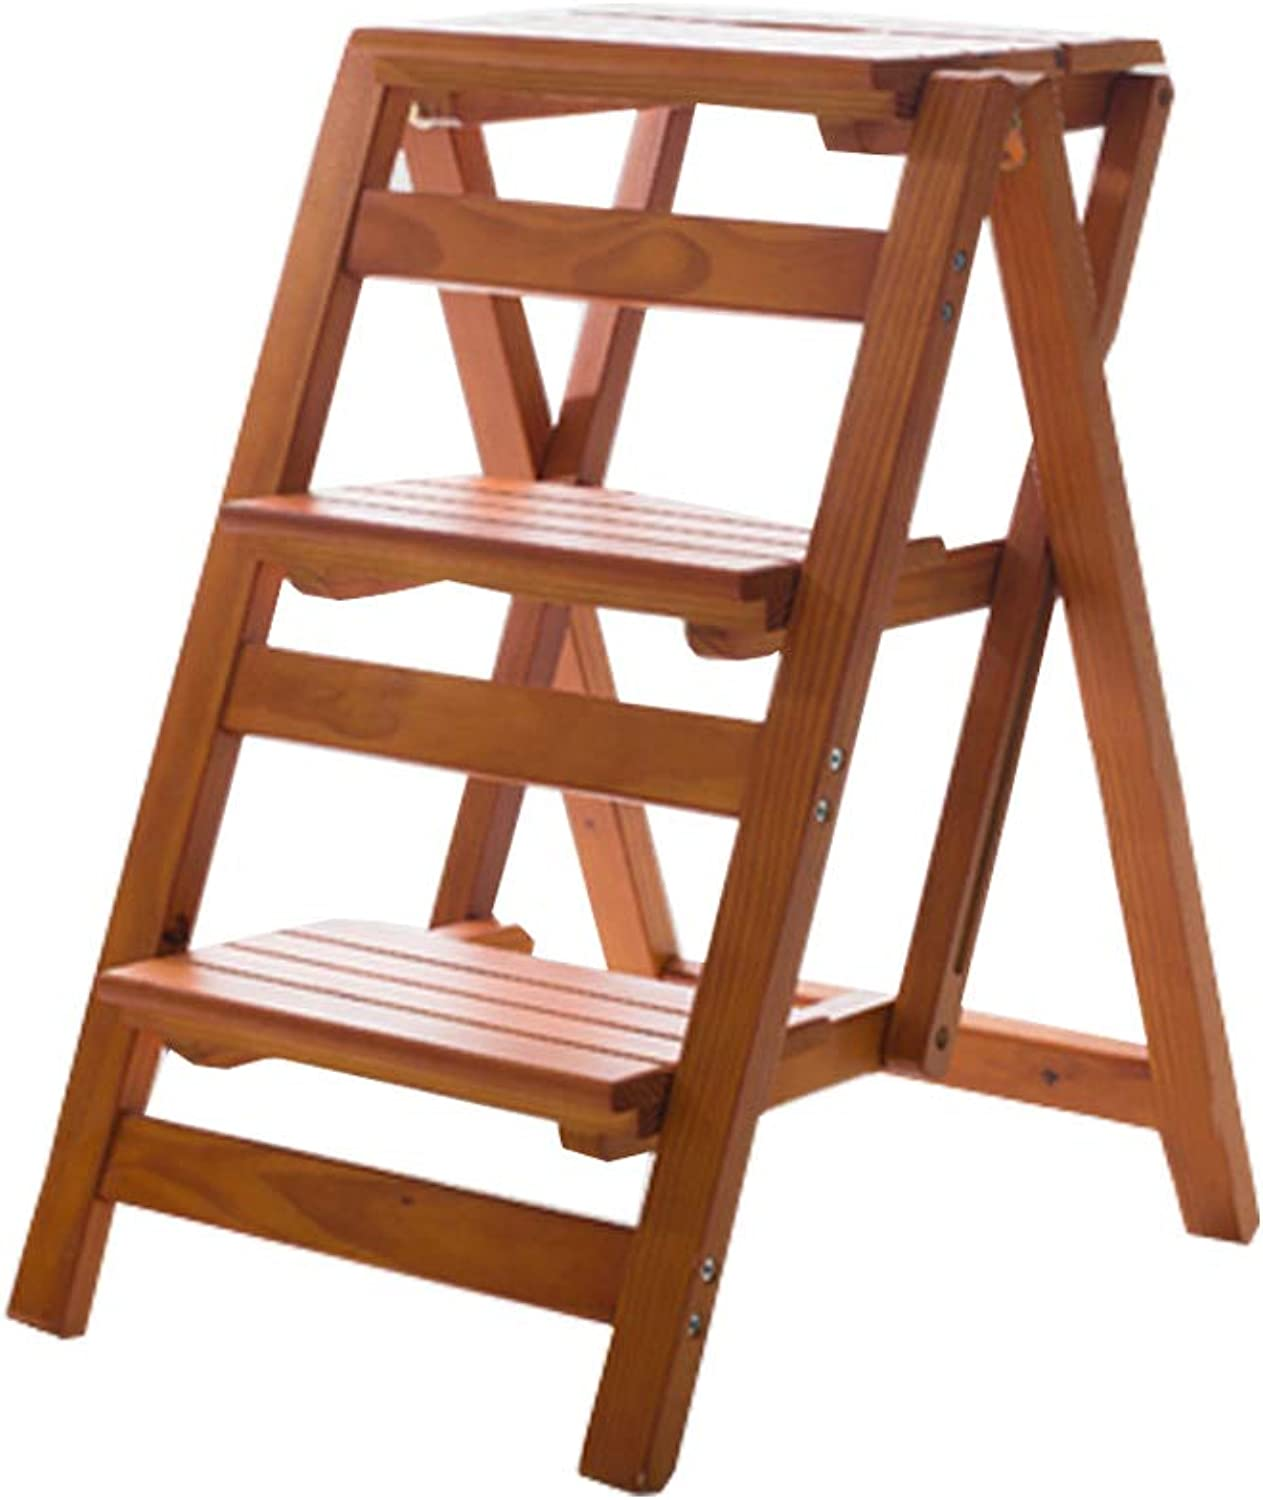 GSHWJS Wooden 3 Step Ladder Chair Stool Multifunctional Folding Shelf Ladder Stool Family Library, 150kg Capacity (Walnut color) Step Stool